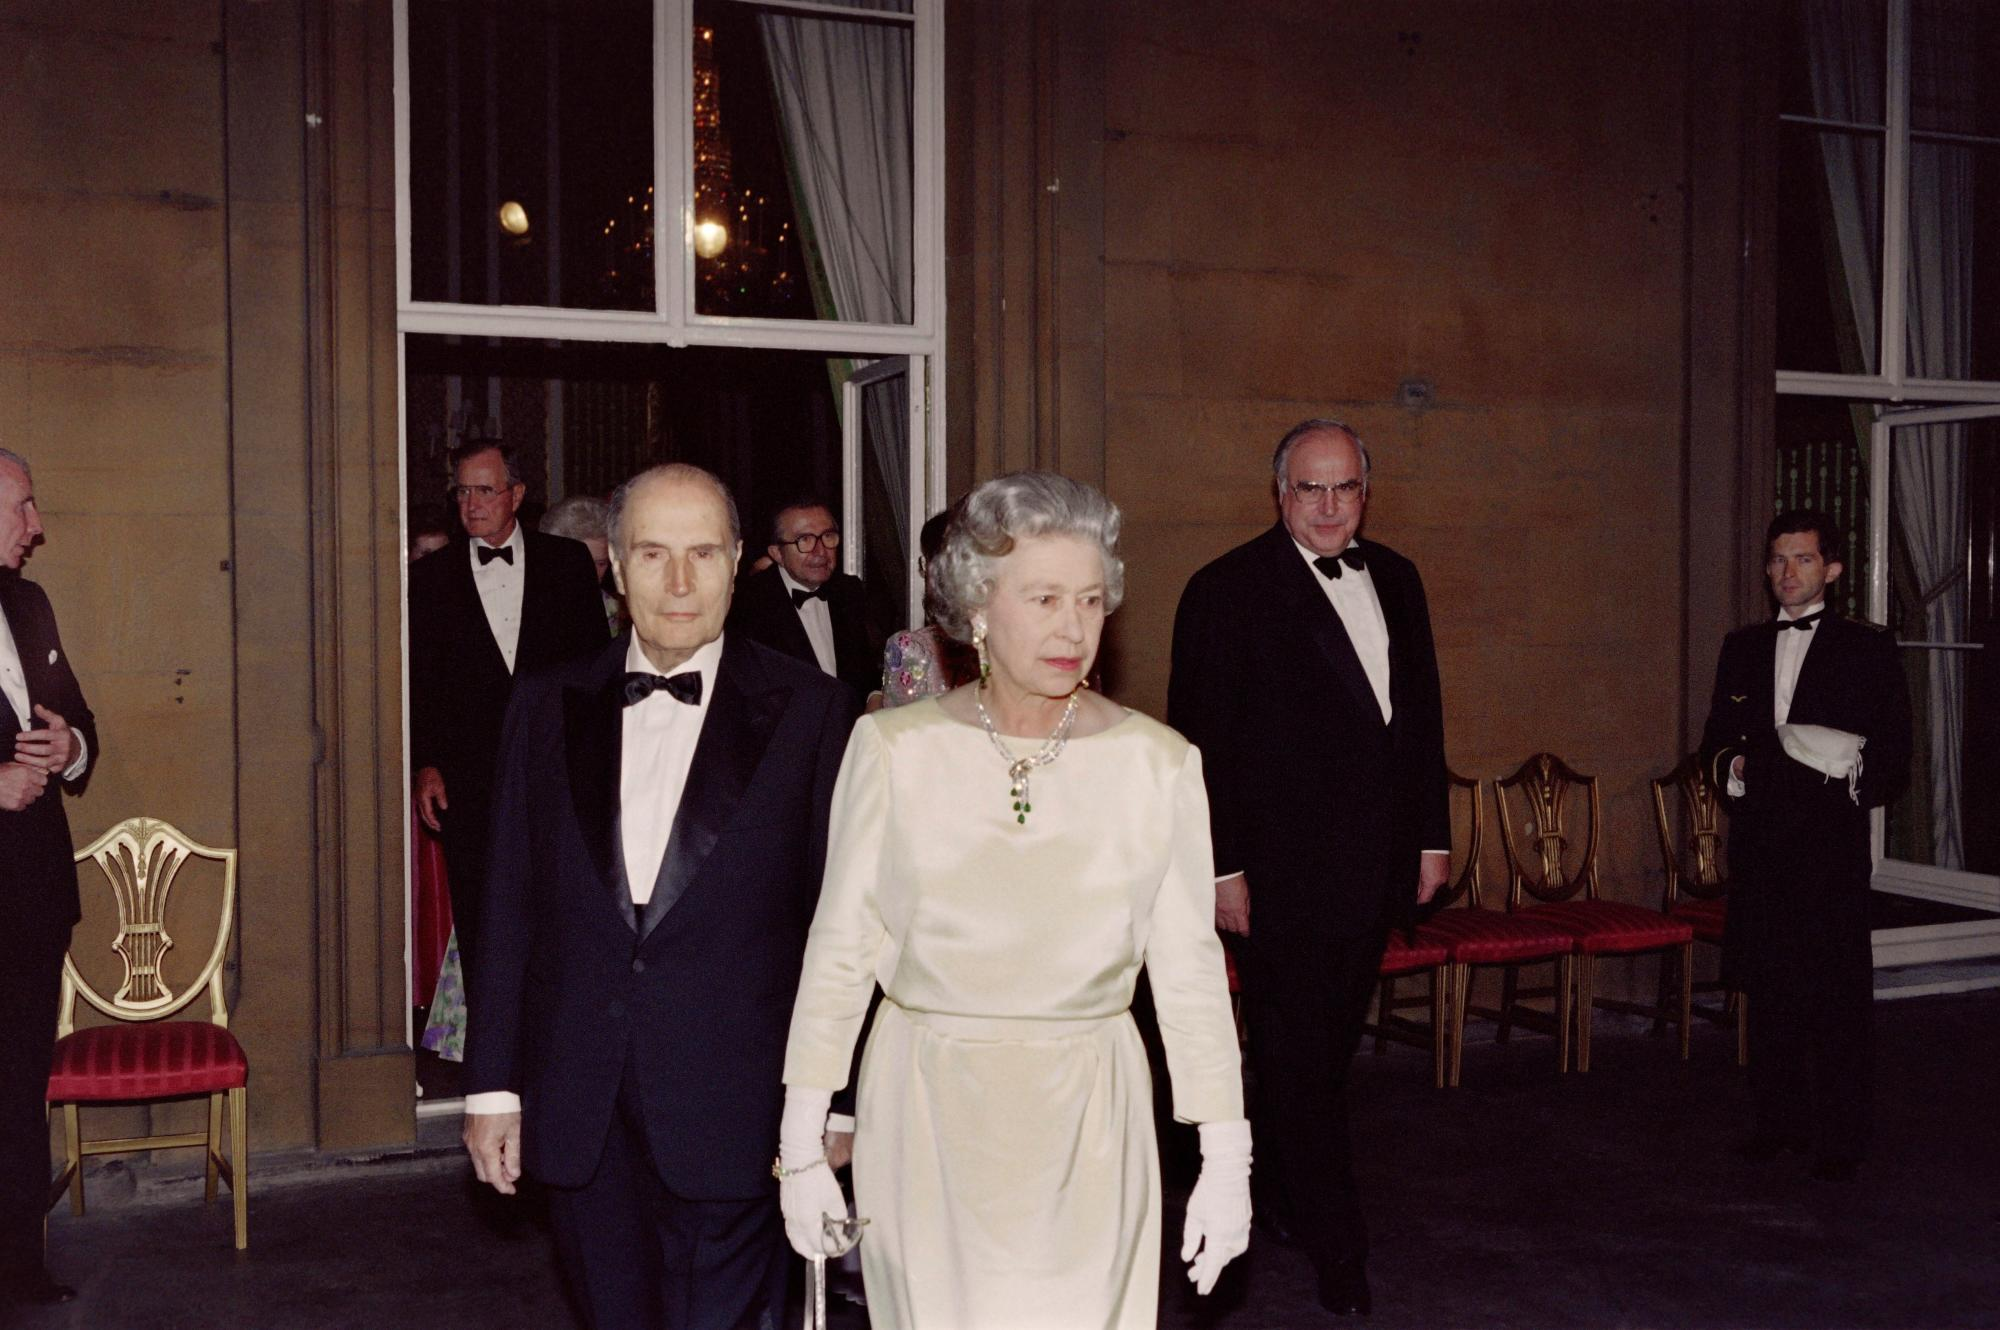 Unearthed clip shows Queen joking around and talking French with world leaders